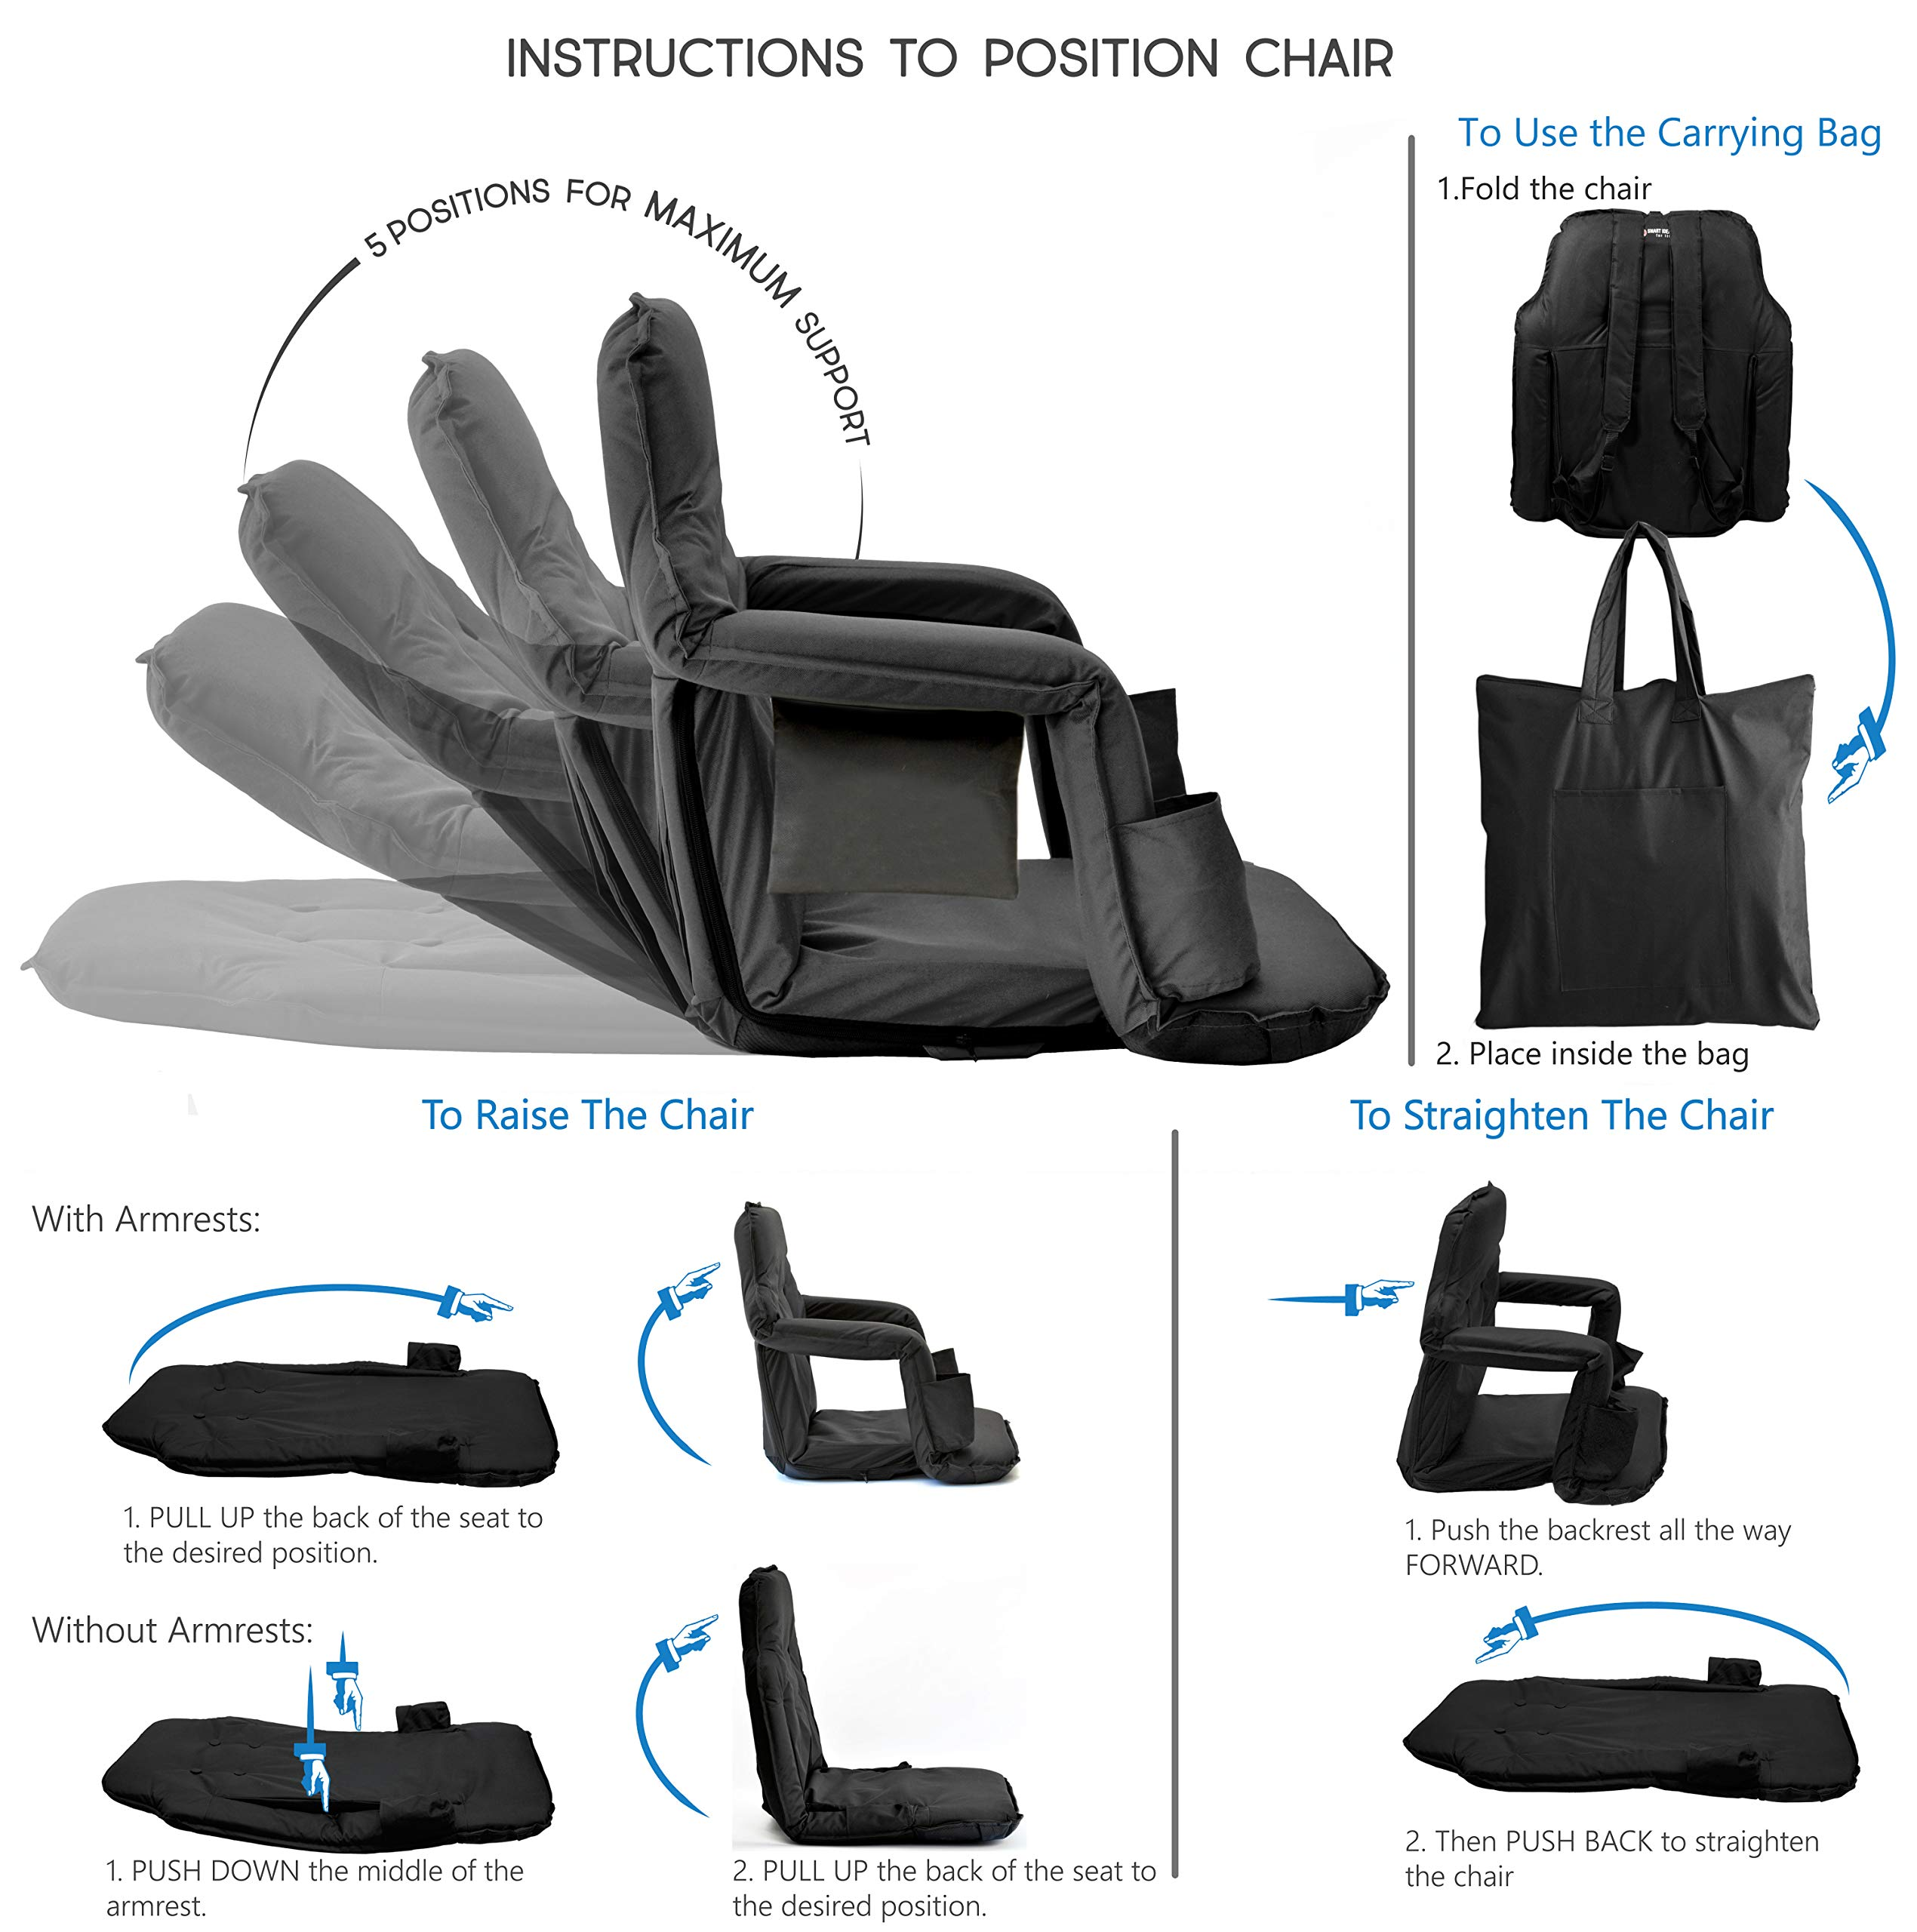 Foldable Stadium Seat for Bleachers - New & Improved 2019 Deluxe Model + Free Carry/Storage Bag- Water Resistant + Thick Padding +2 Drink Holders +Zipped Pocket (Black, Standard Size) by Smart Ideas for Life